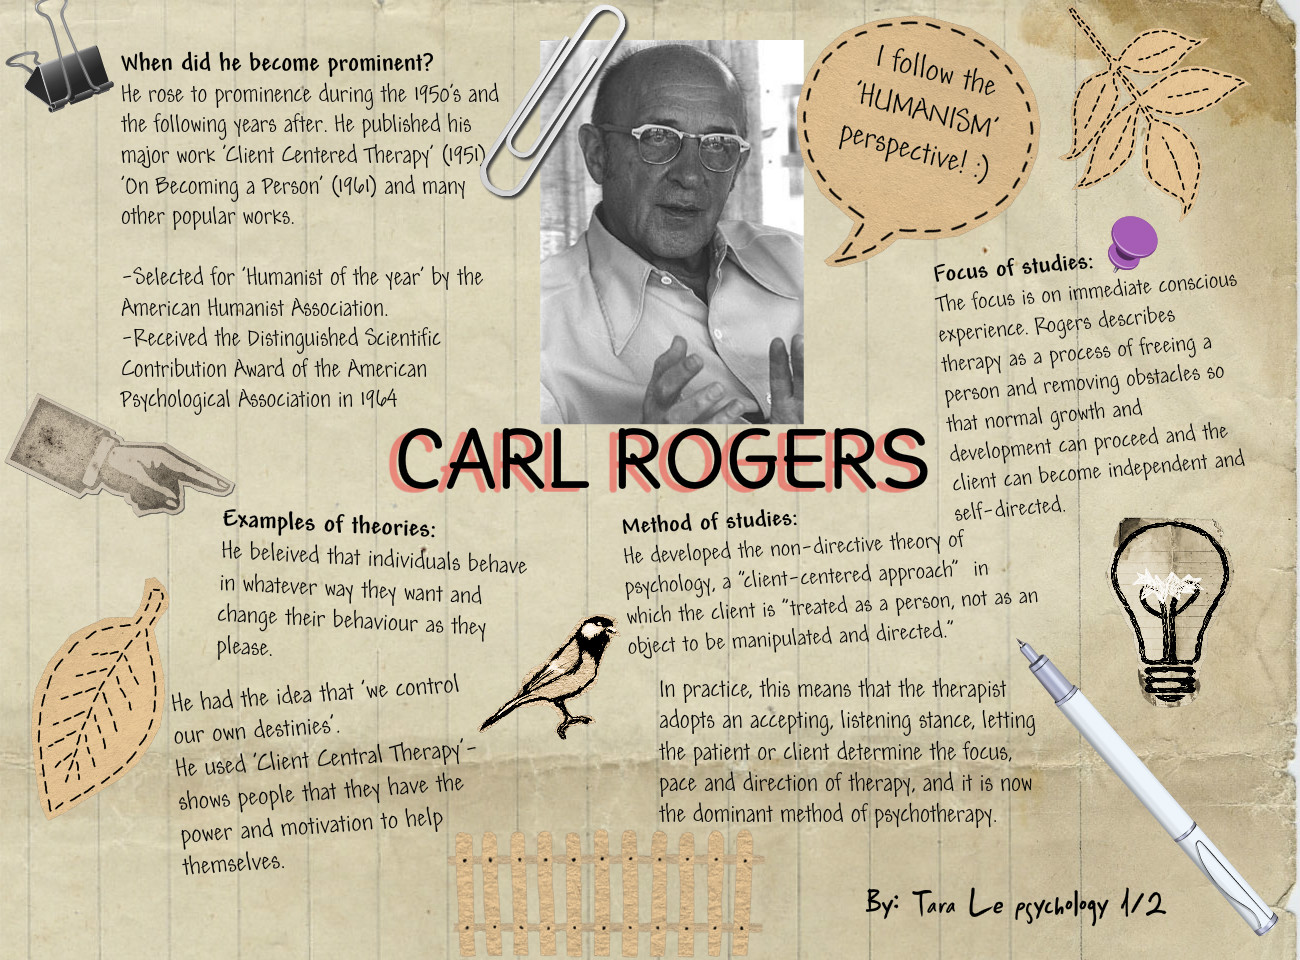 carl rogers and his theory of personality There are many theories for personality and various theorists have defined this in different ways one fairy comprehensive definition for personality carl roger's like many other psychologists formulated his own theory of personality engler (2003) observes how carl rogers was among the most.